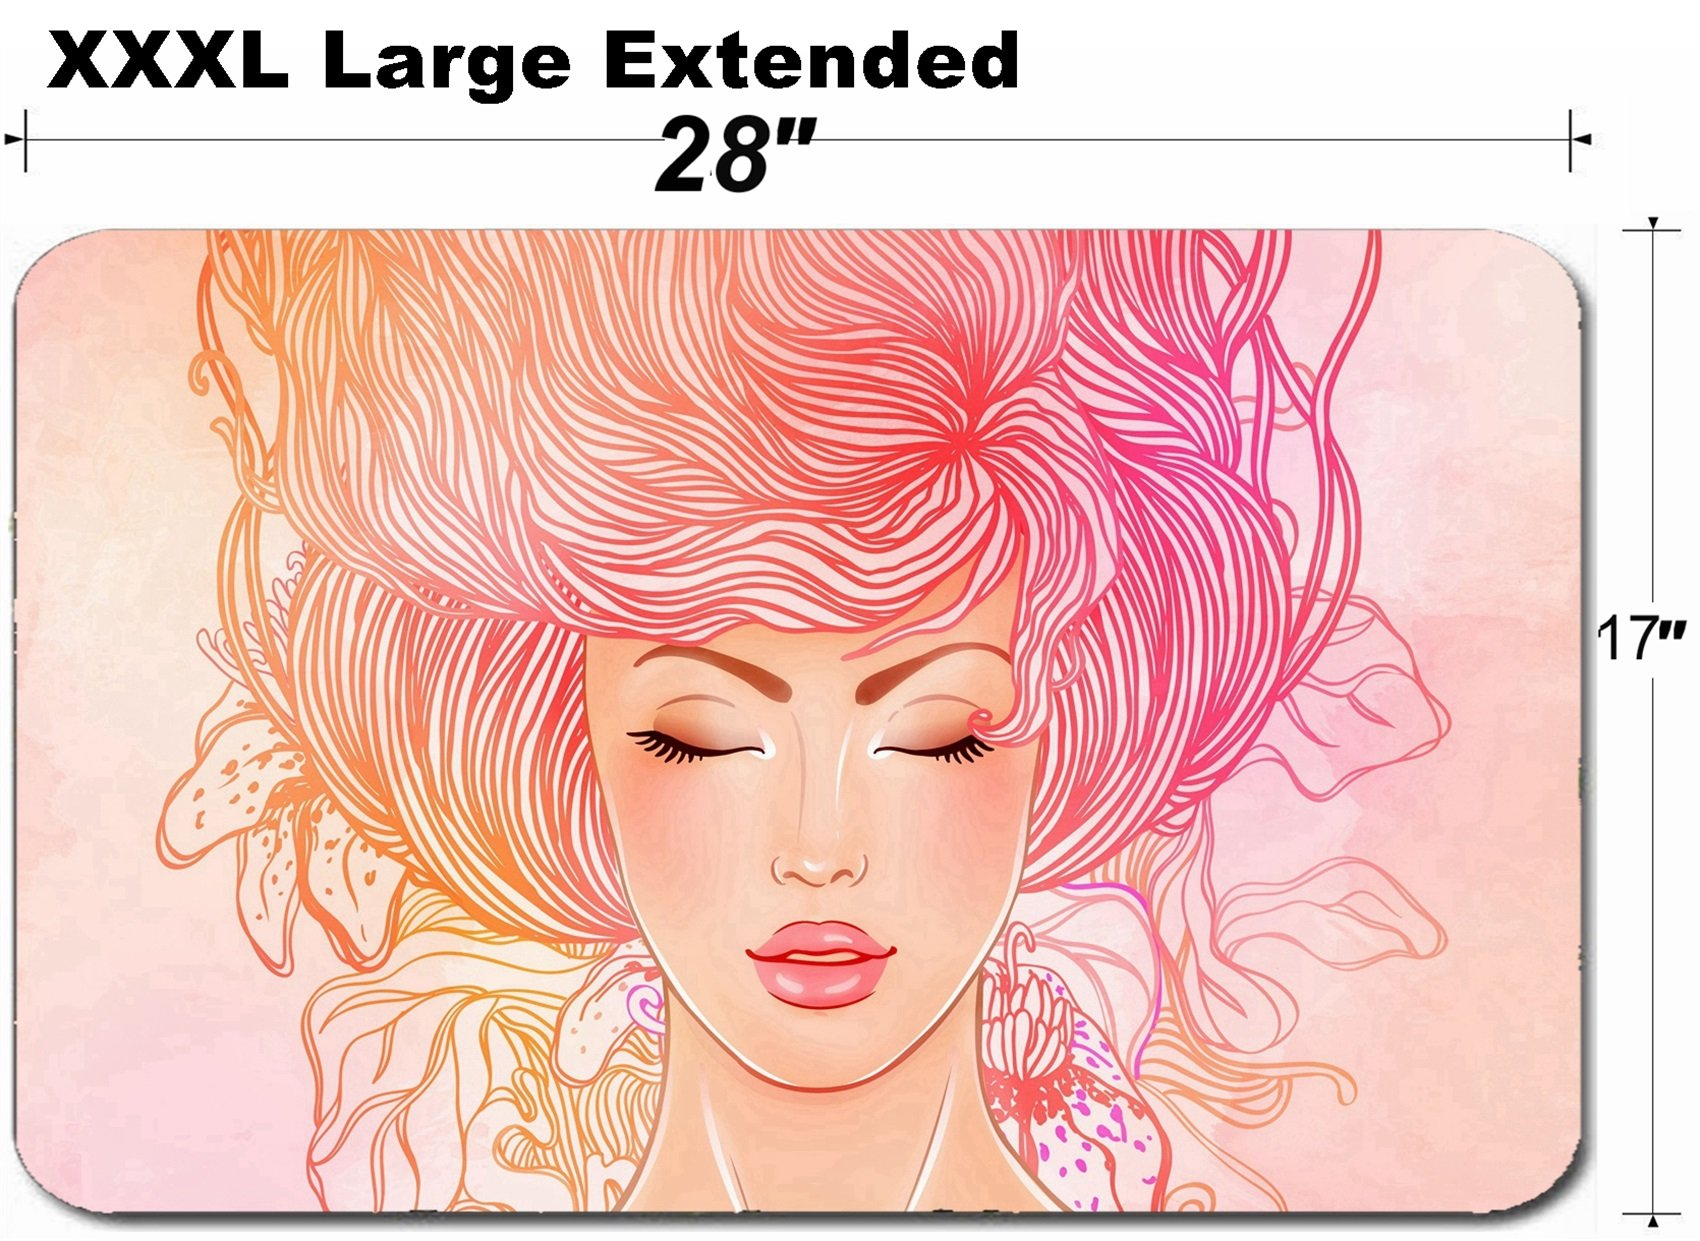 MSD Large Table Mat Non-Slip Natural Rubber Desk Pads Image ID 24547770 Spa Fashion Beautiful Woman with Long Pink Hair